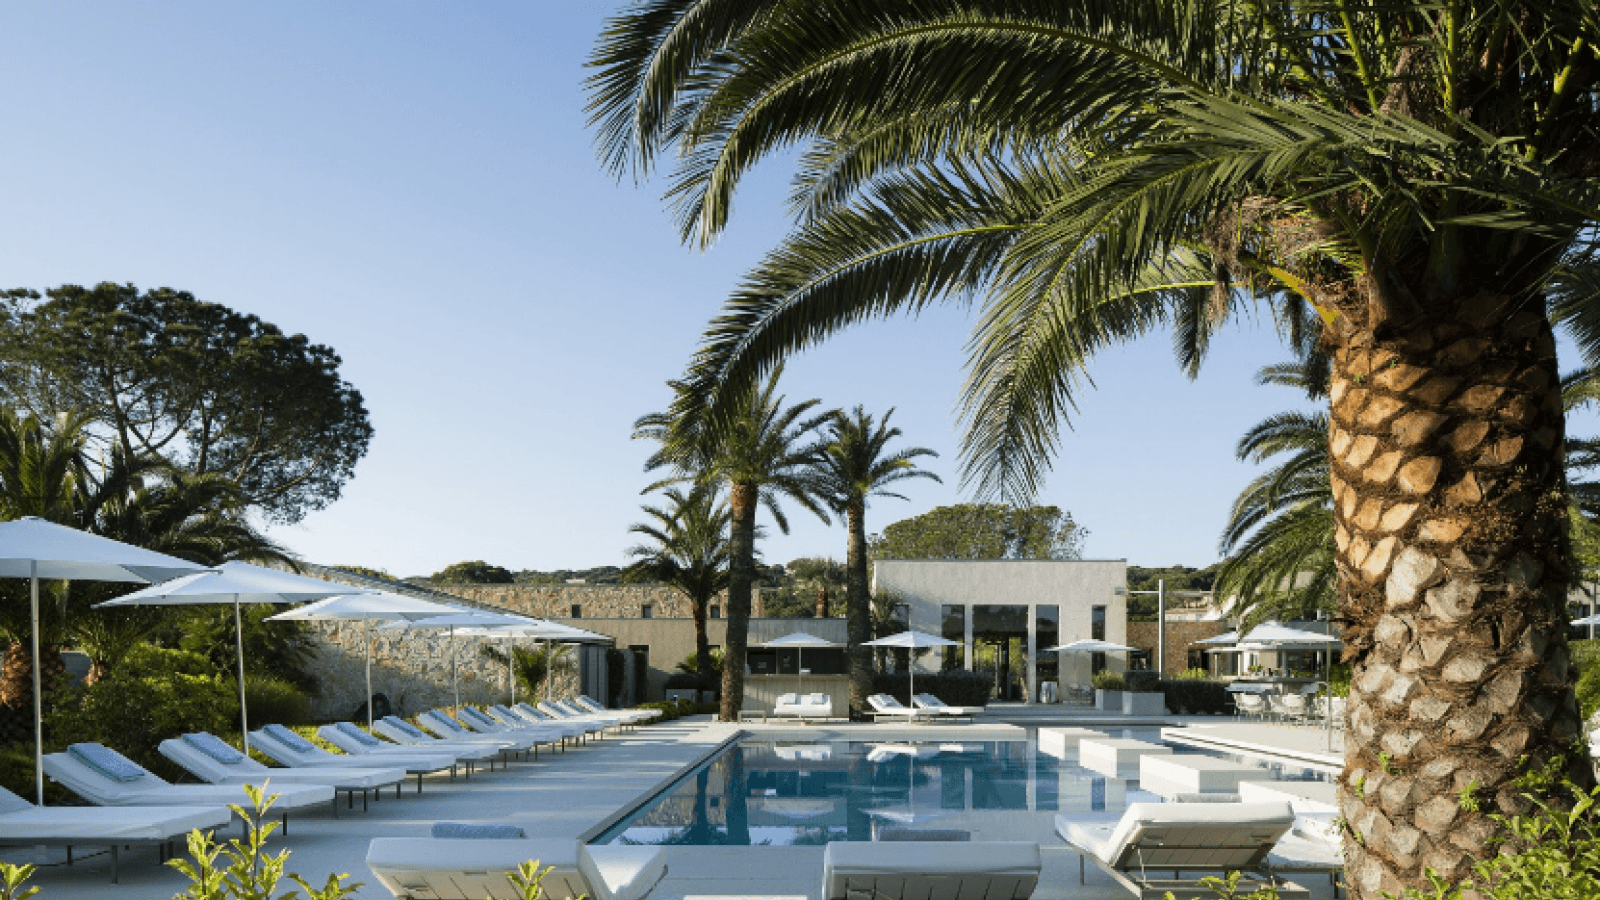 Meet Christophe Ponceau - Part 2 : The uniquely verdant atmosphere at the Sezz Saint-Tropez